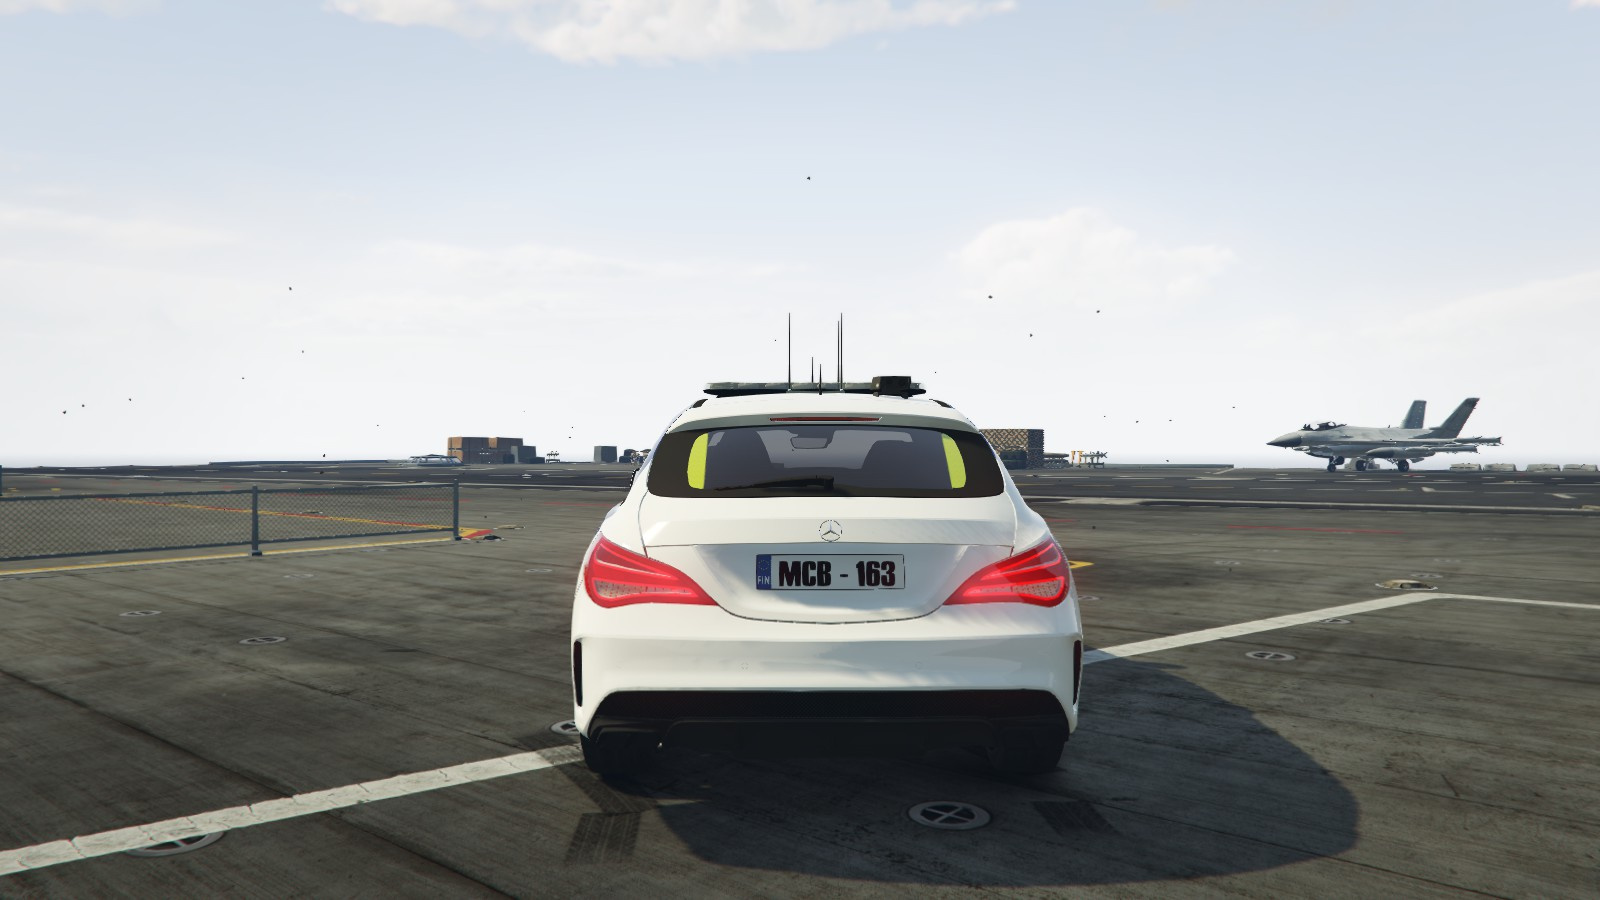 Finnish police mercedes benz cl 45 amg gta5 for Mercedes benz gta